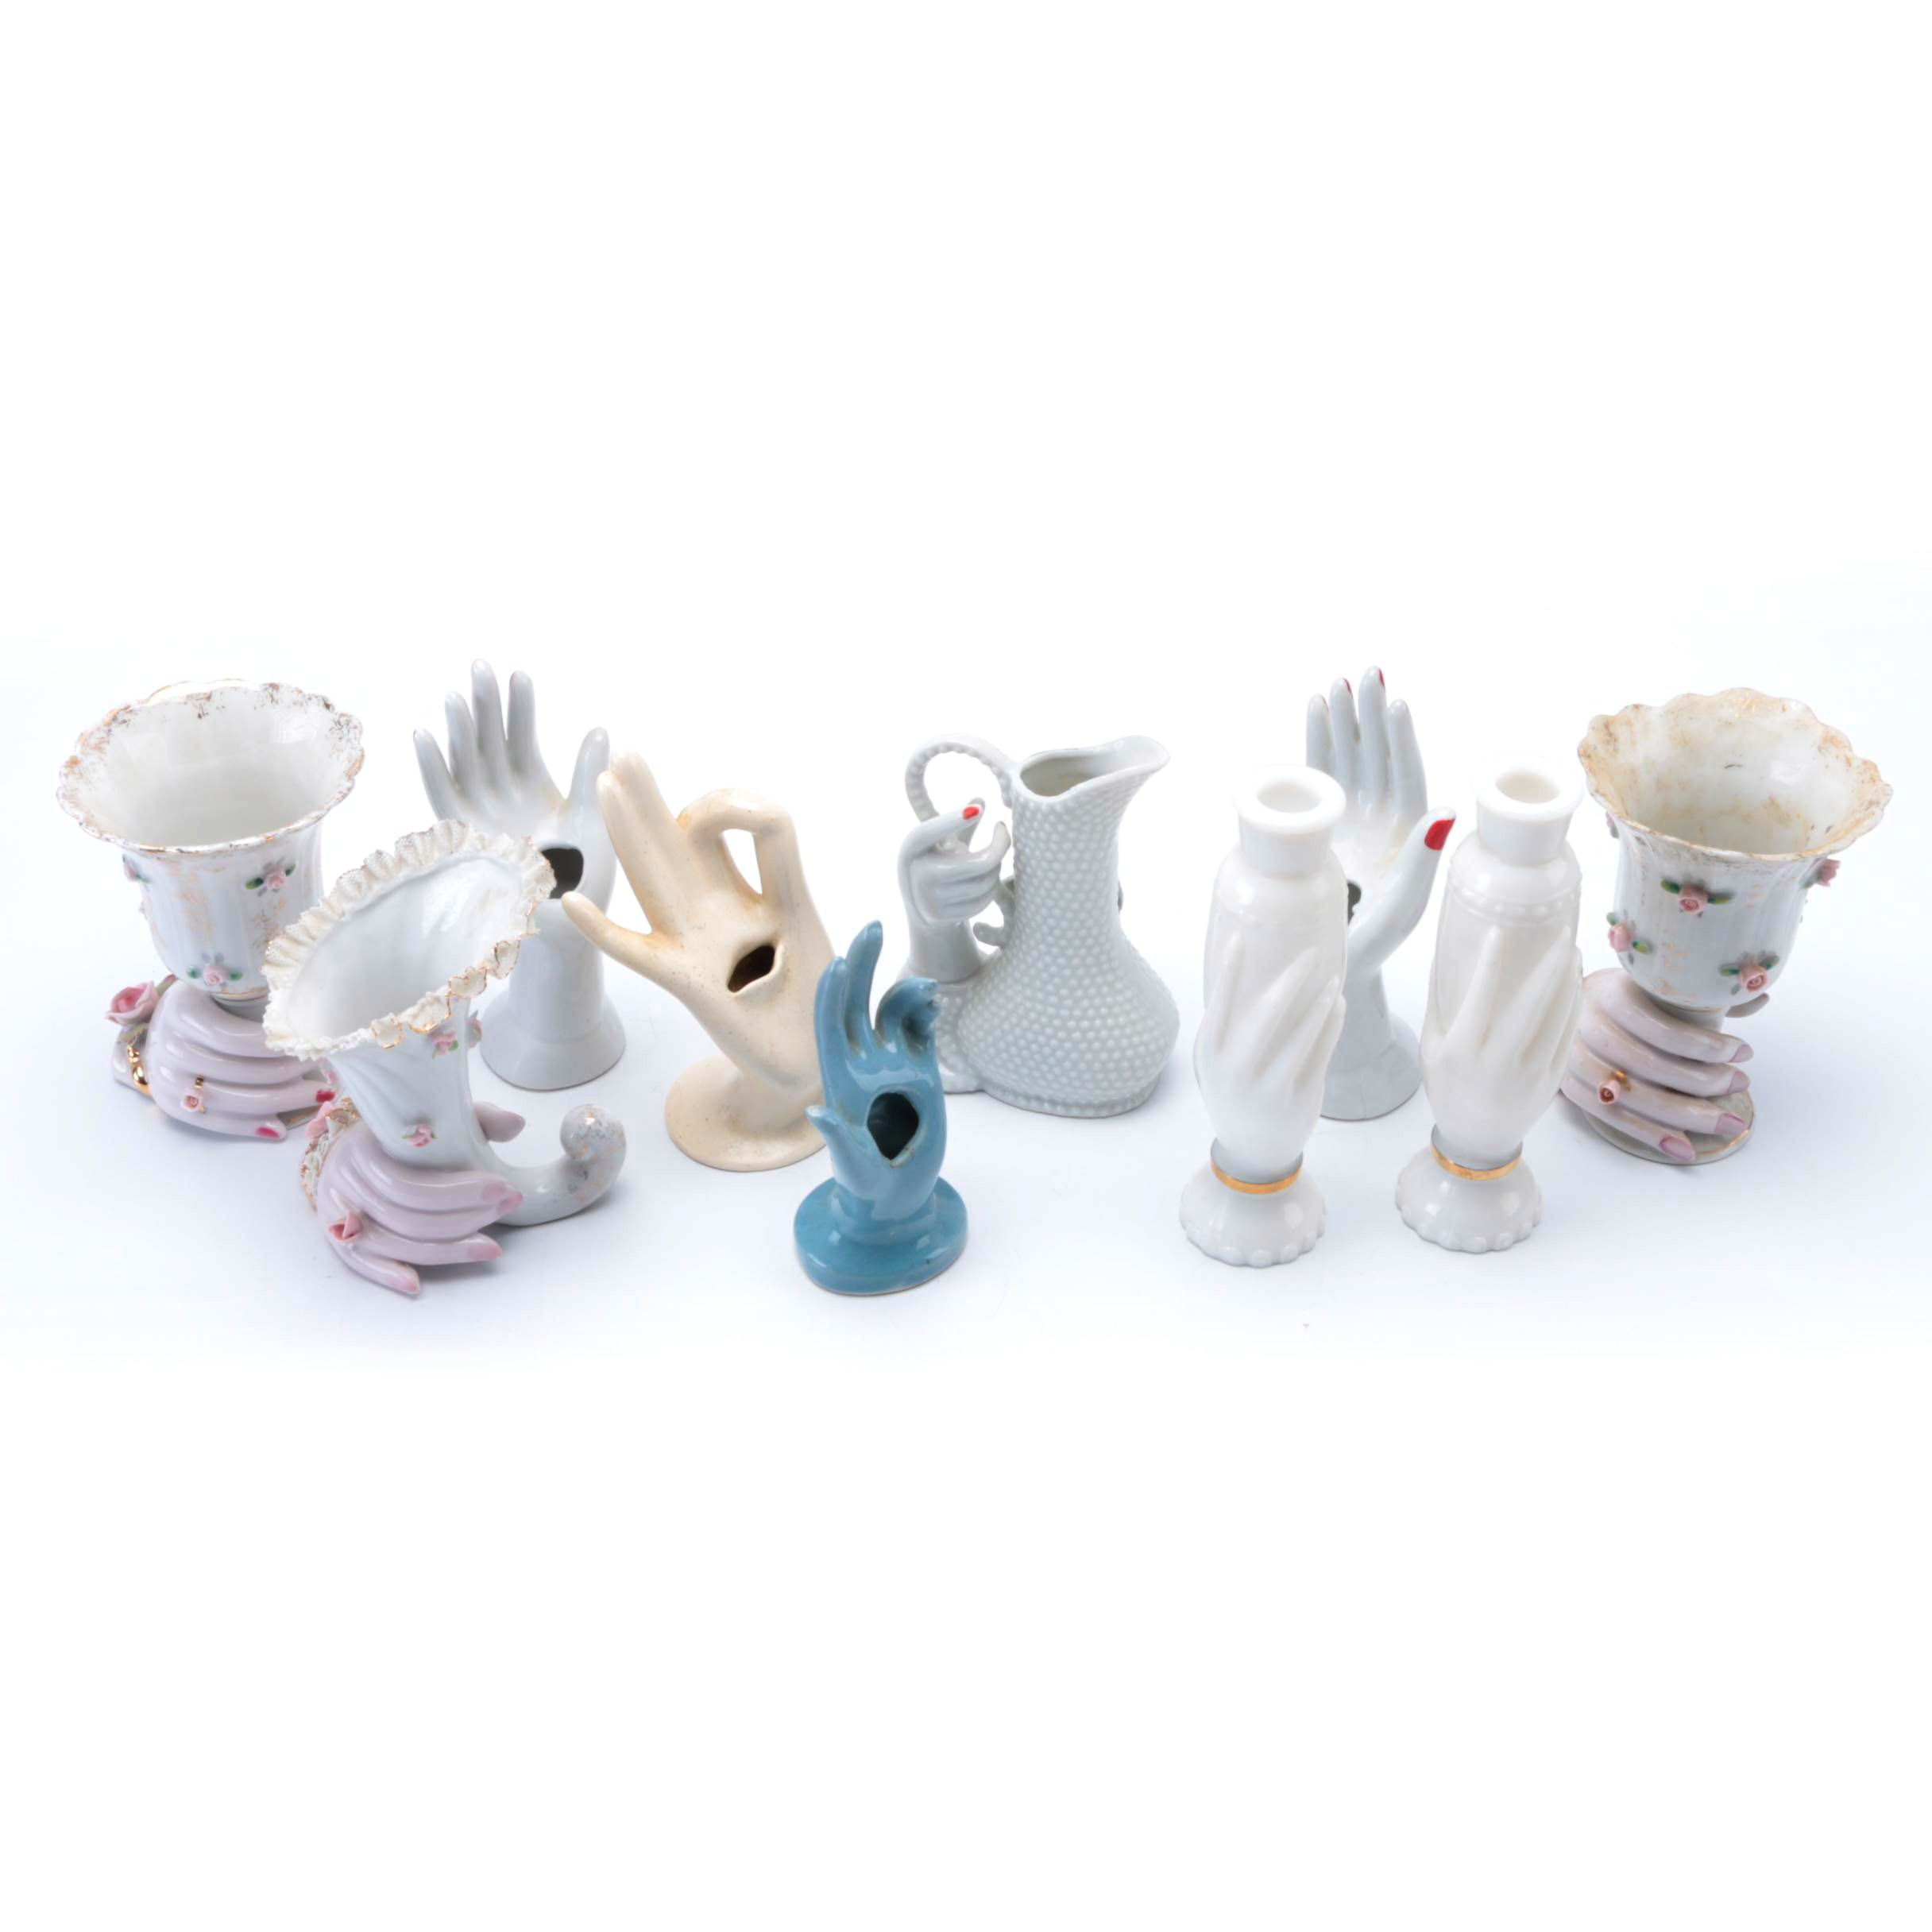 Collection of Hand Shaped Ceramic Vases